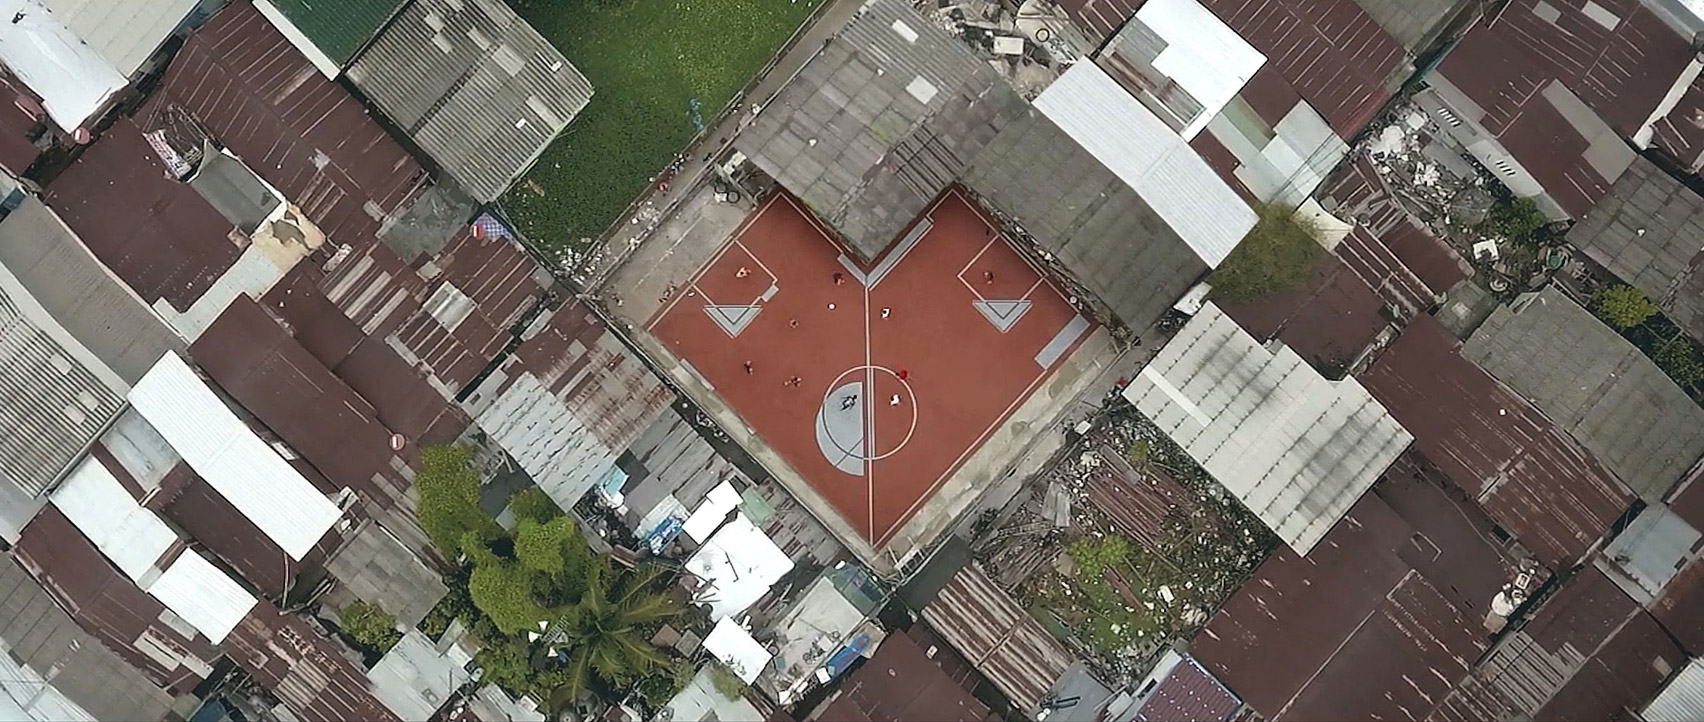 unusual-football-pitch-ap-thai-cj-worx-bangkok-thailand_dezeen_1704_col_0.jpg